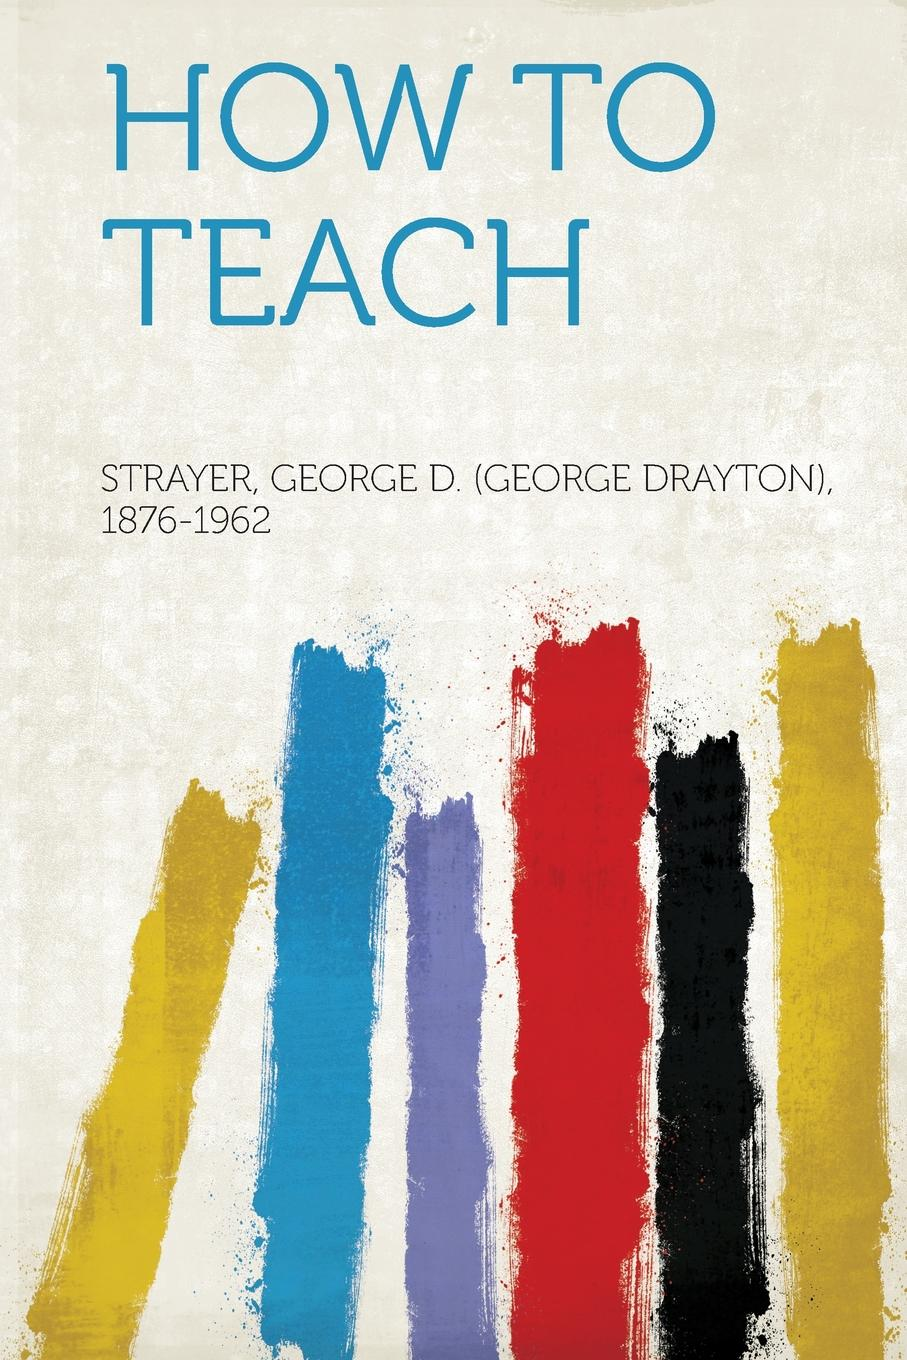 Strayer George D. (George Dr 1876-1962 How to Teach цена и фото